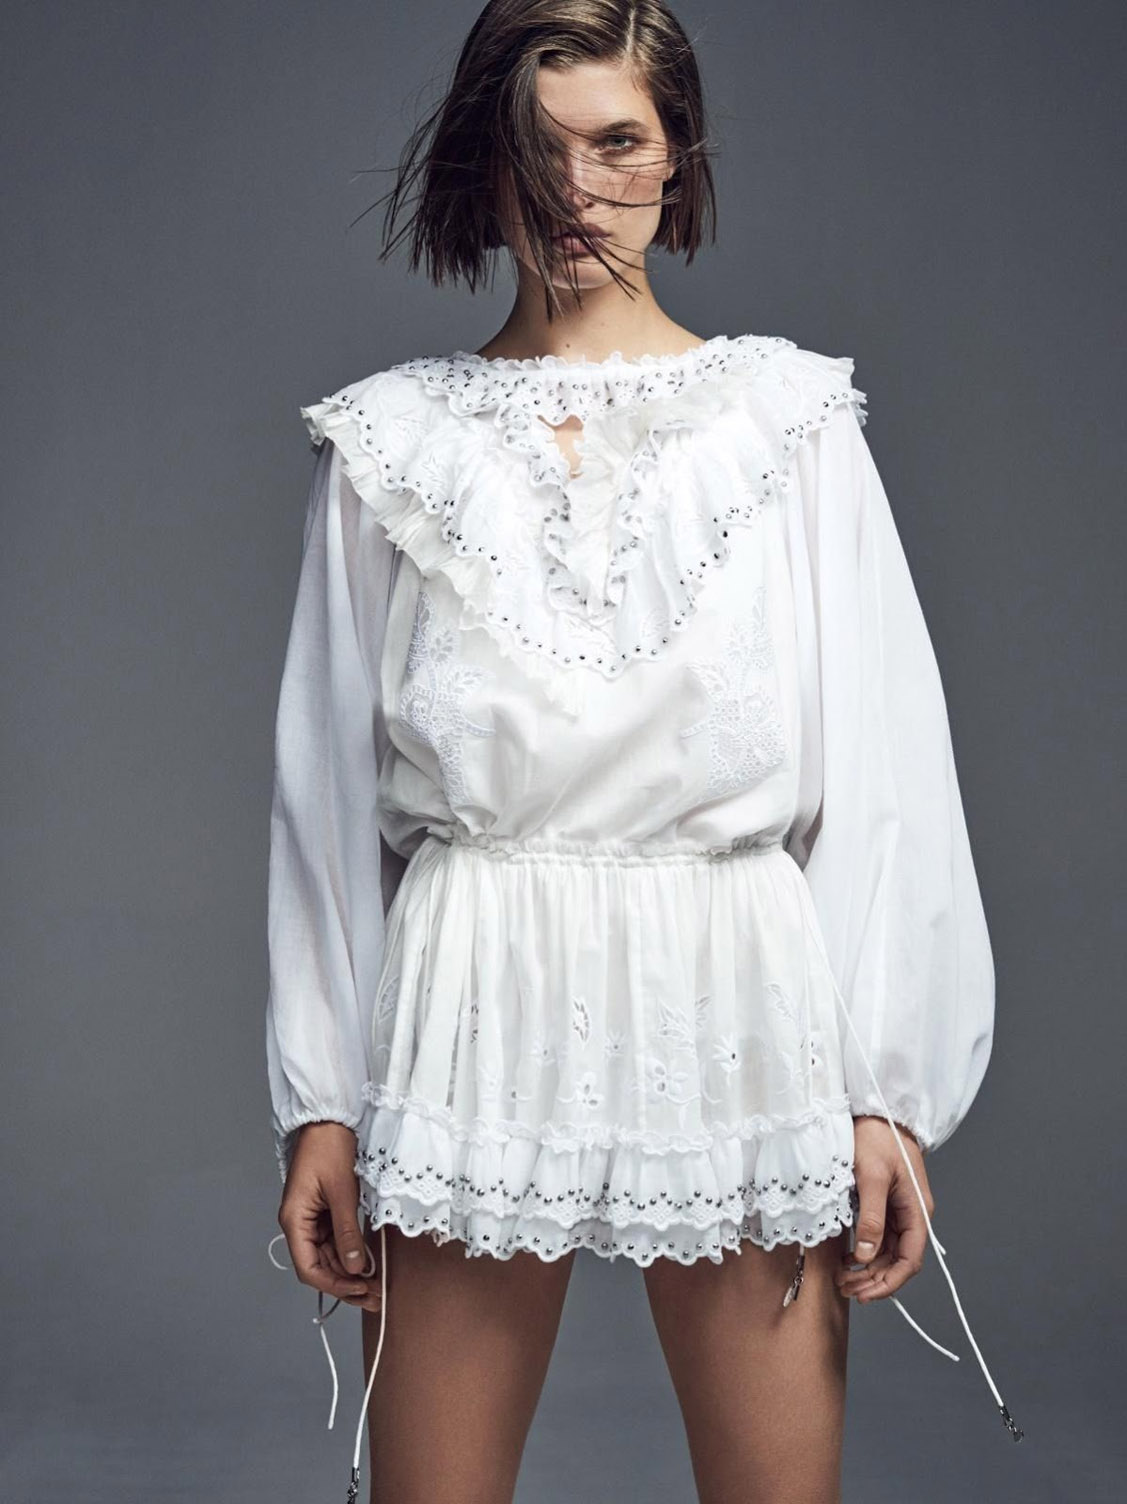 White Like Summer / Julia van Os by Nathaniel Goldberg / Vogue Paris April 2019